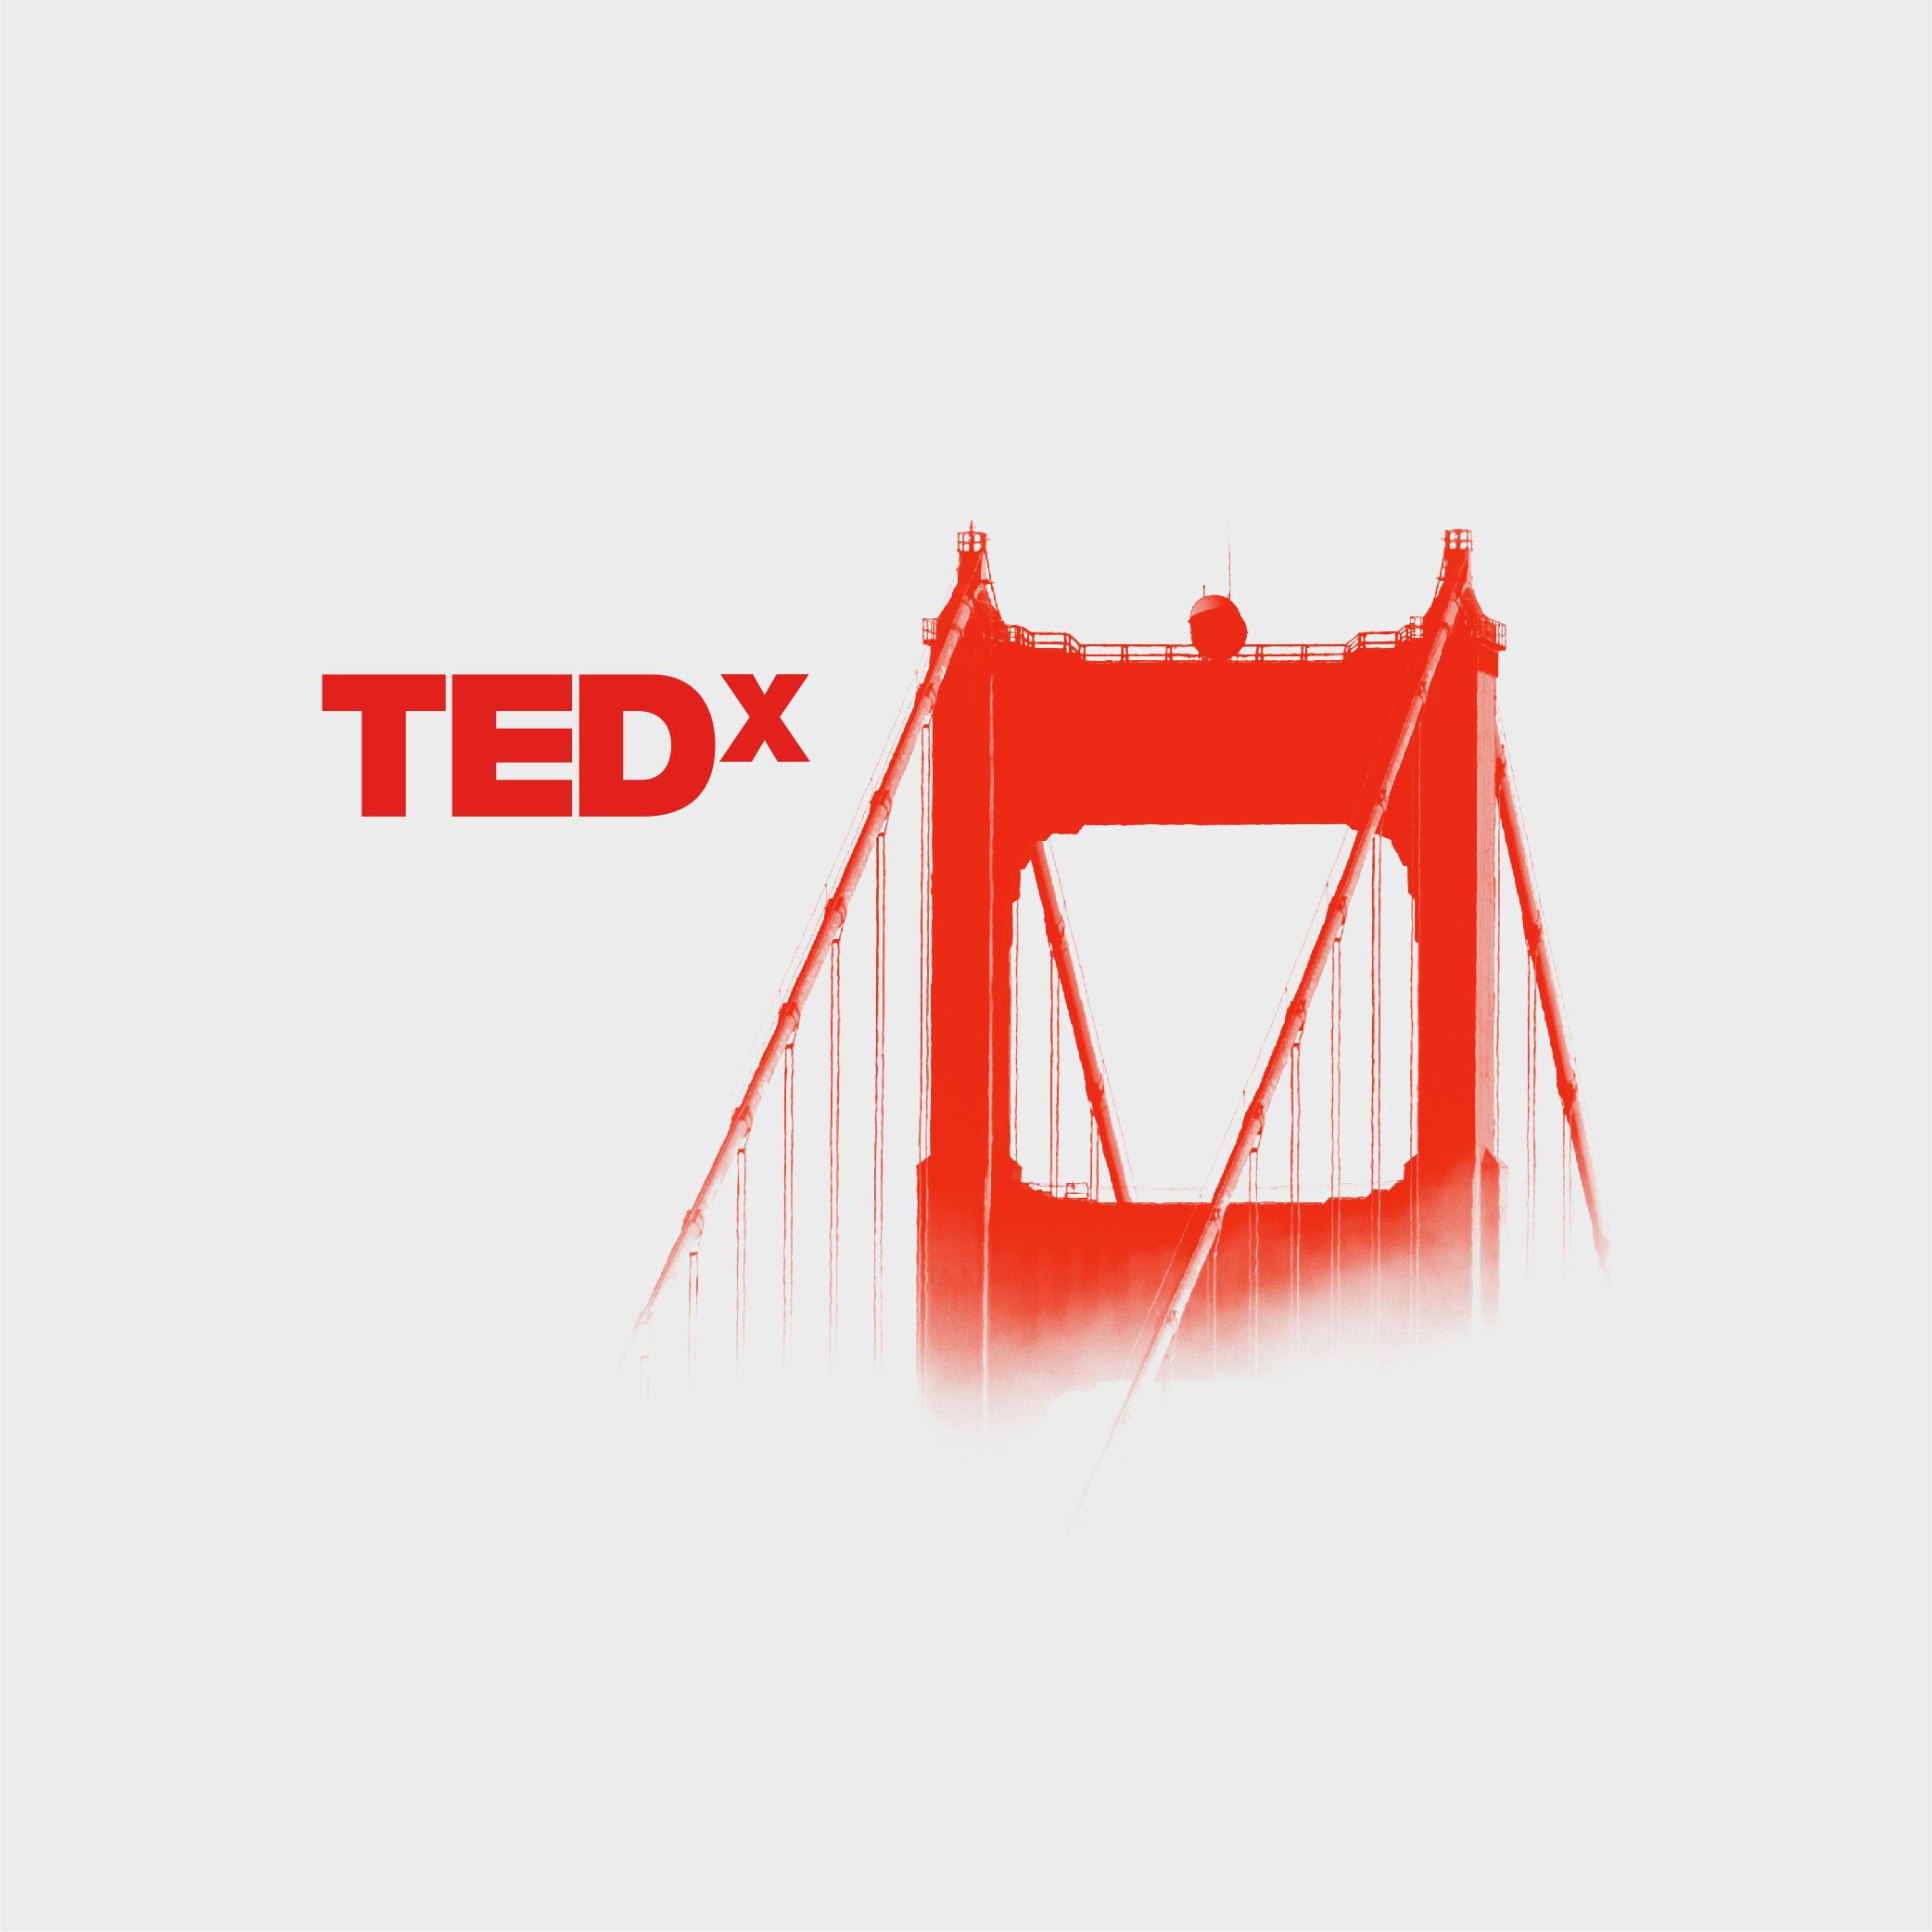 TEDxSanFrancisco